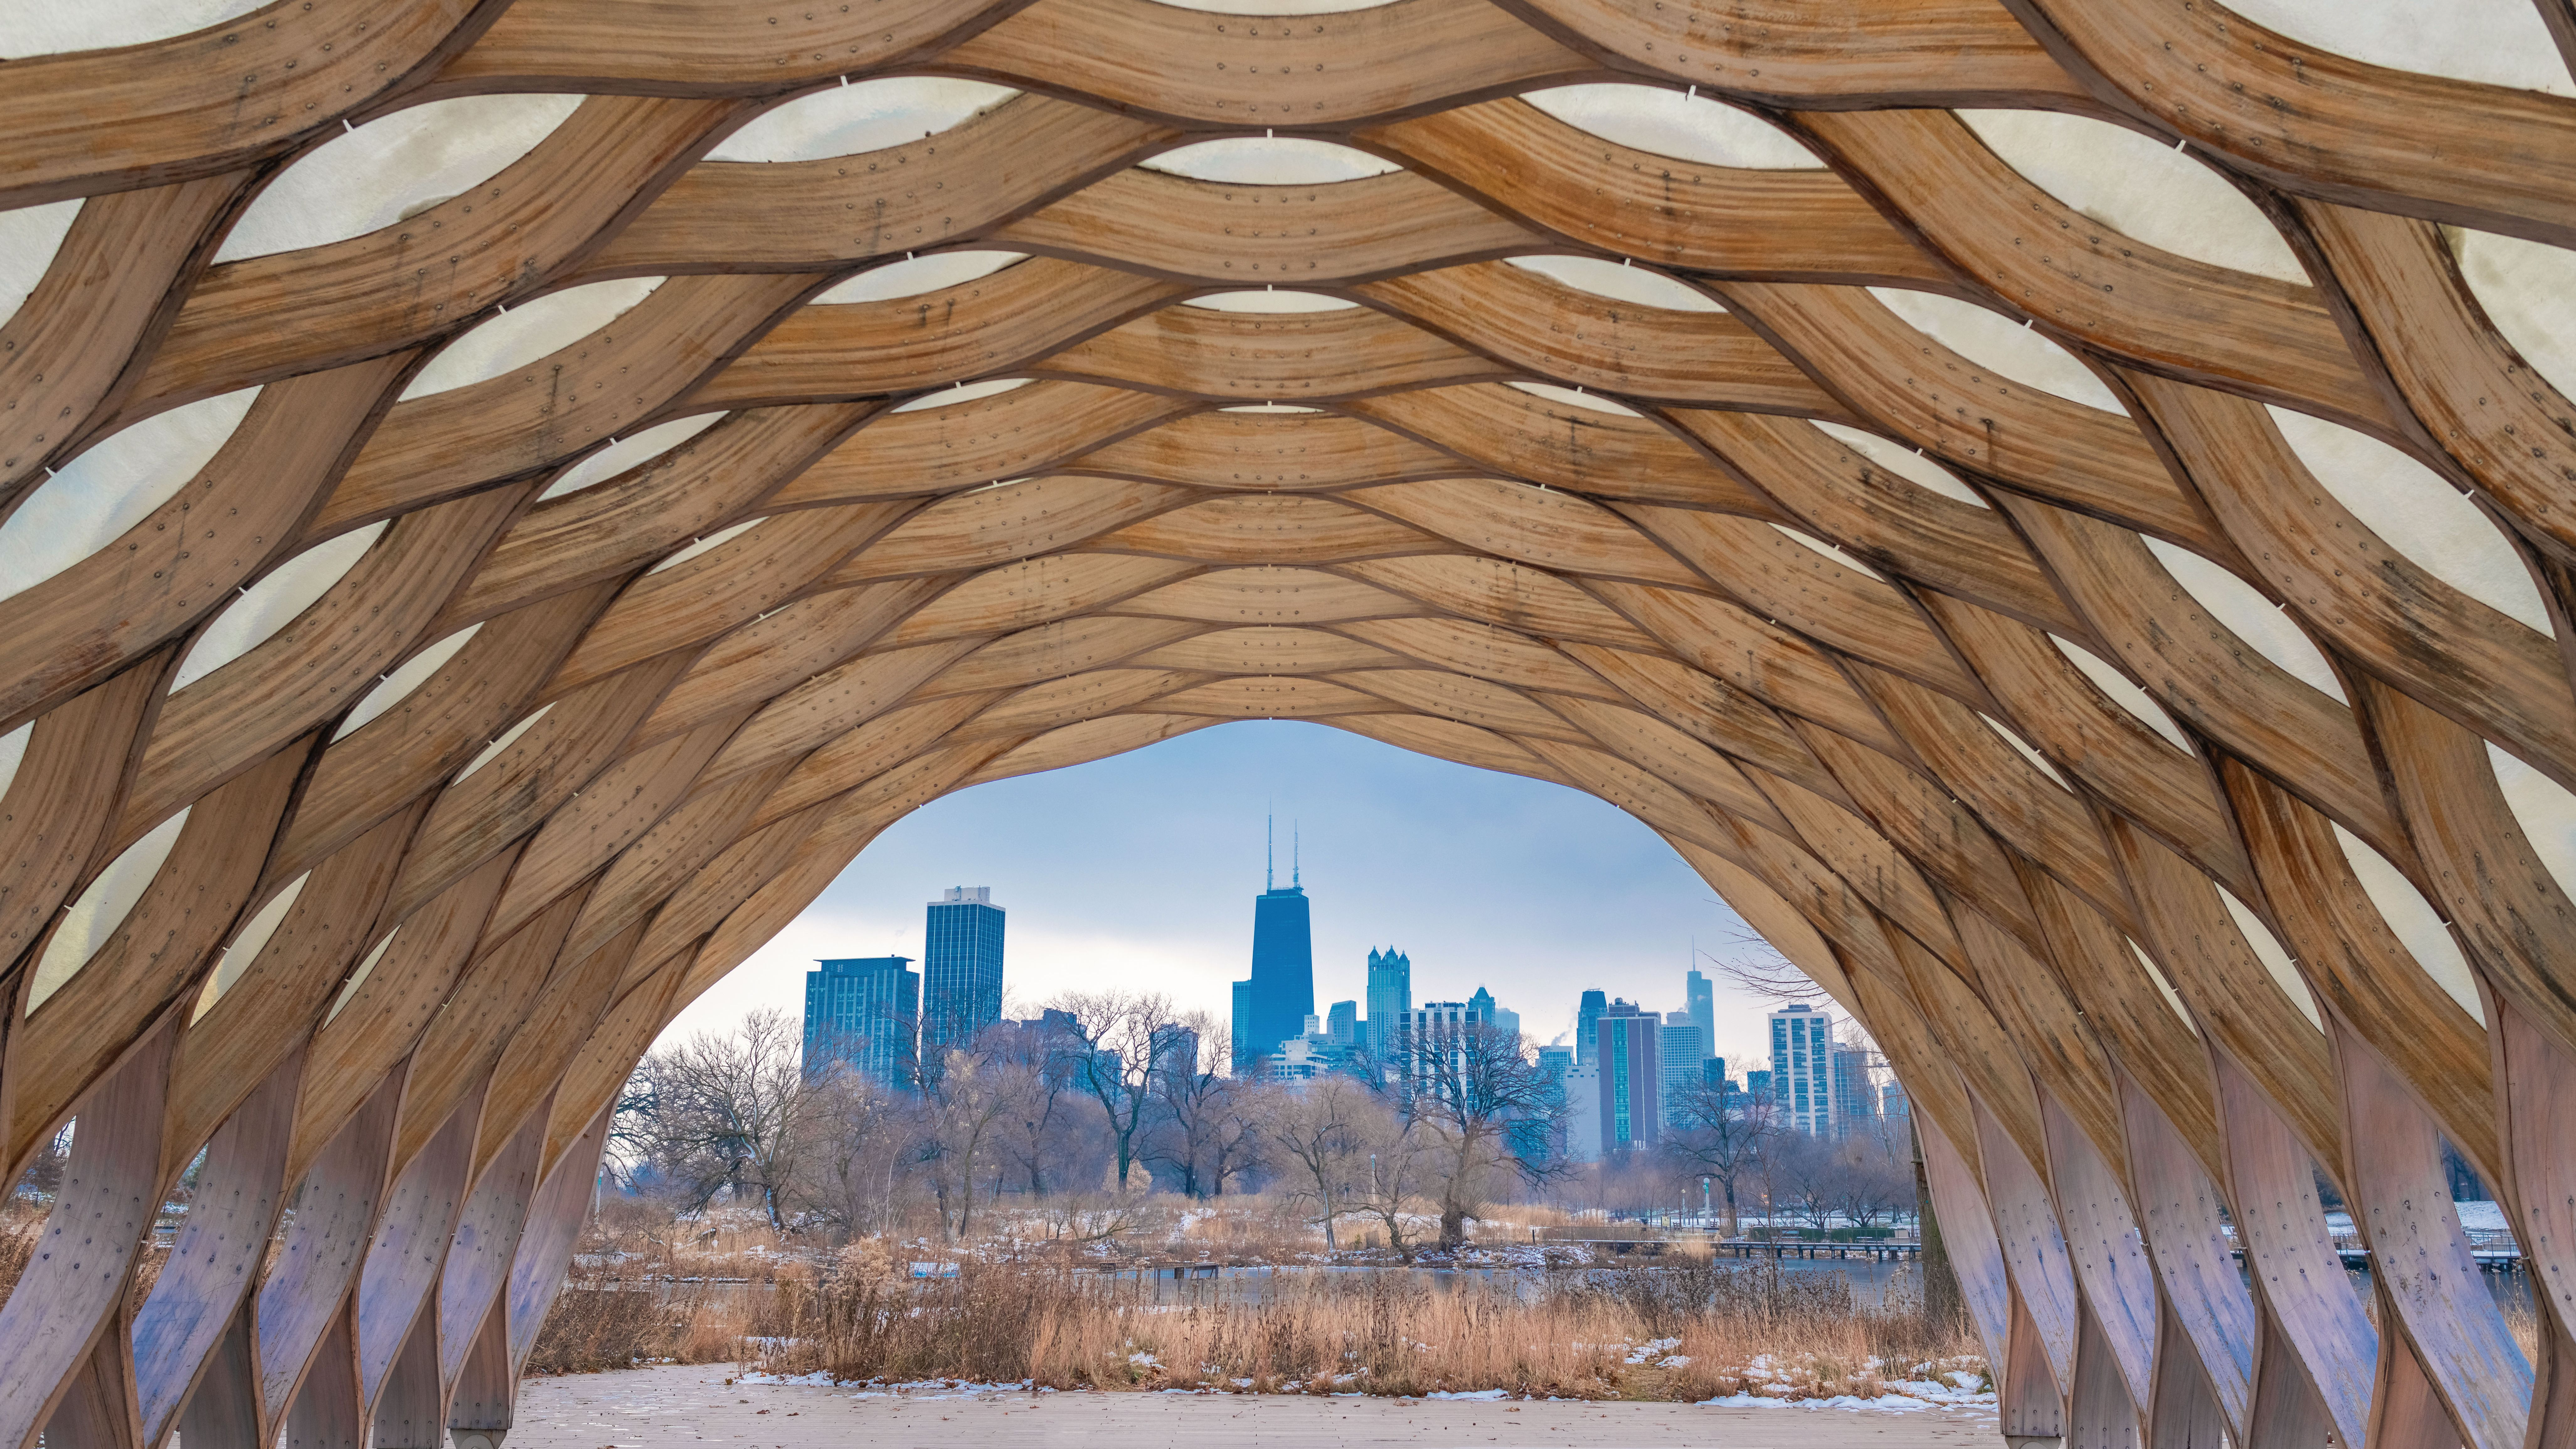 A Visitor's Guide to Lincoln Park Zoo